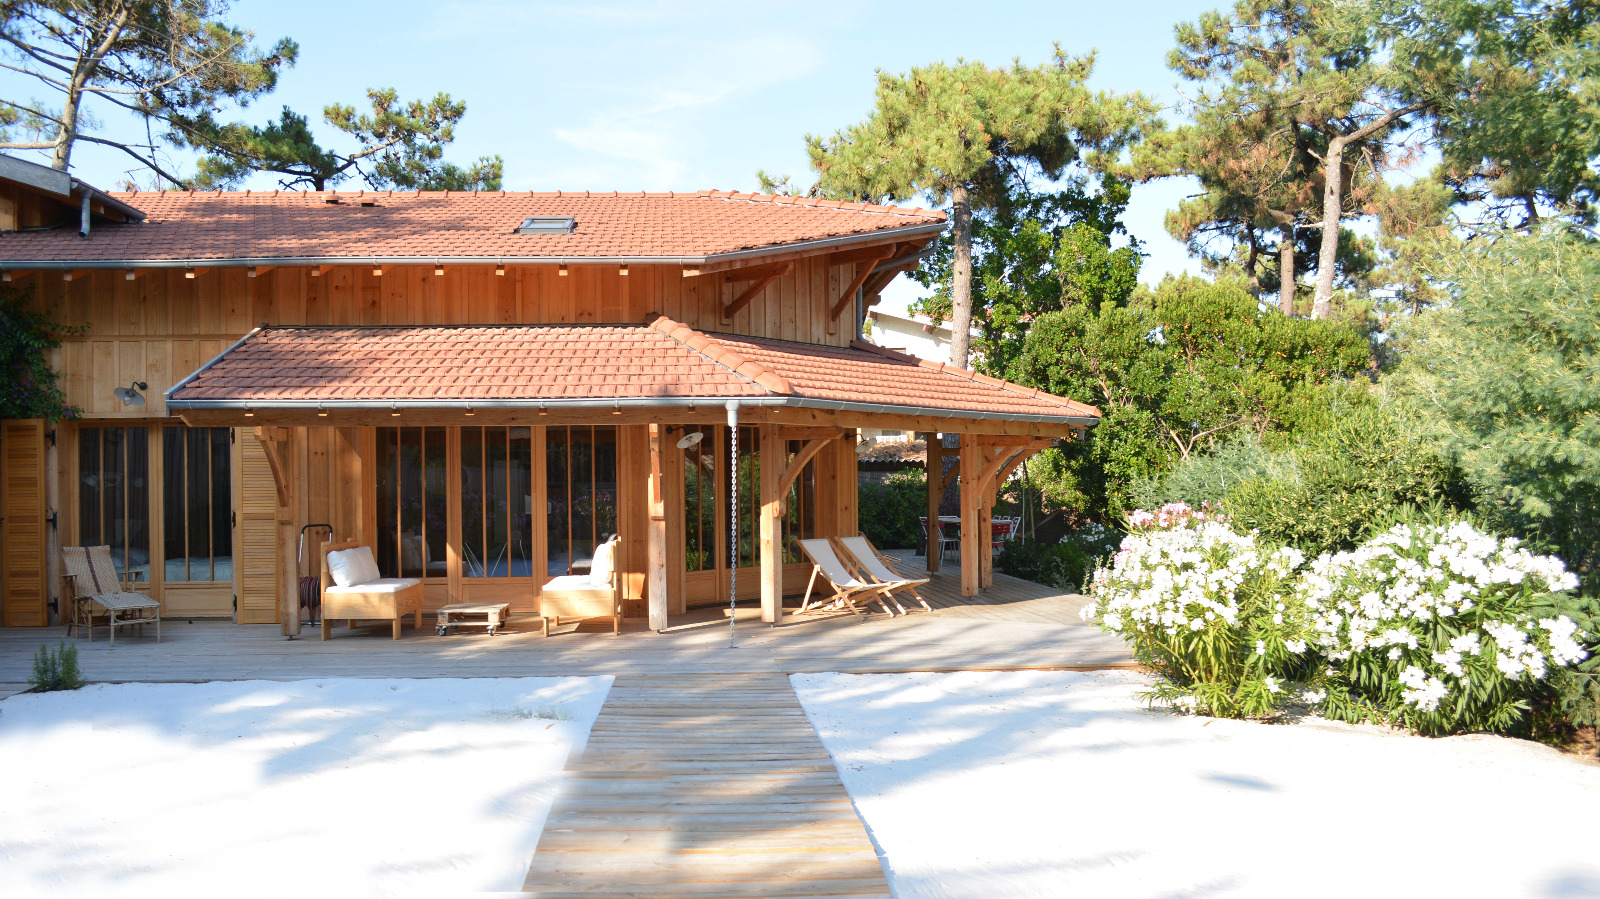 Location cap ferret oc an villa mouette immo prestige for Location immobilier prestige